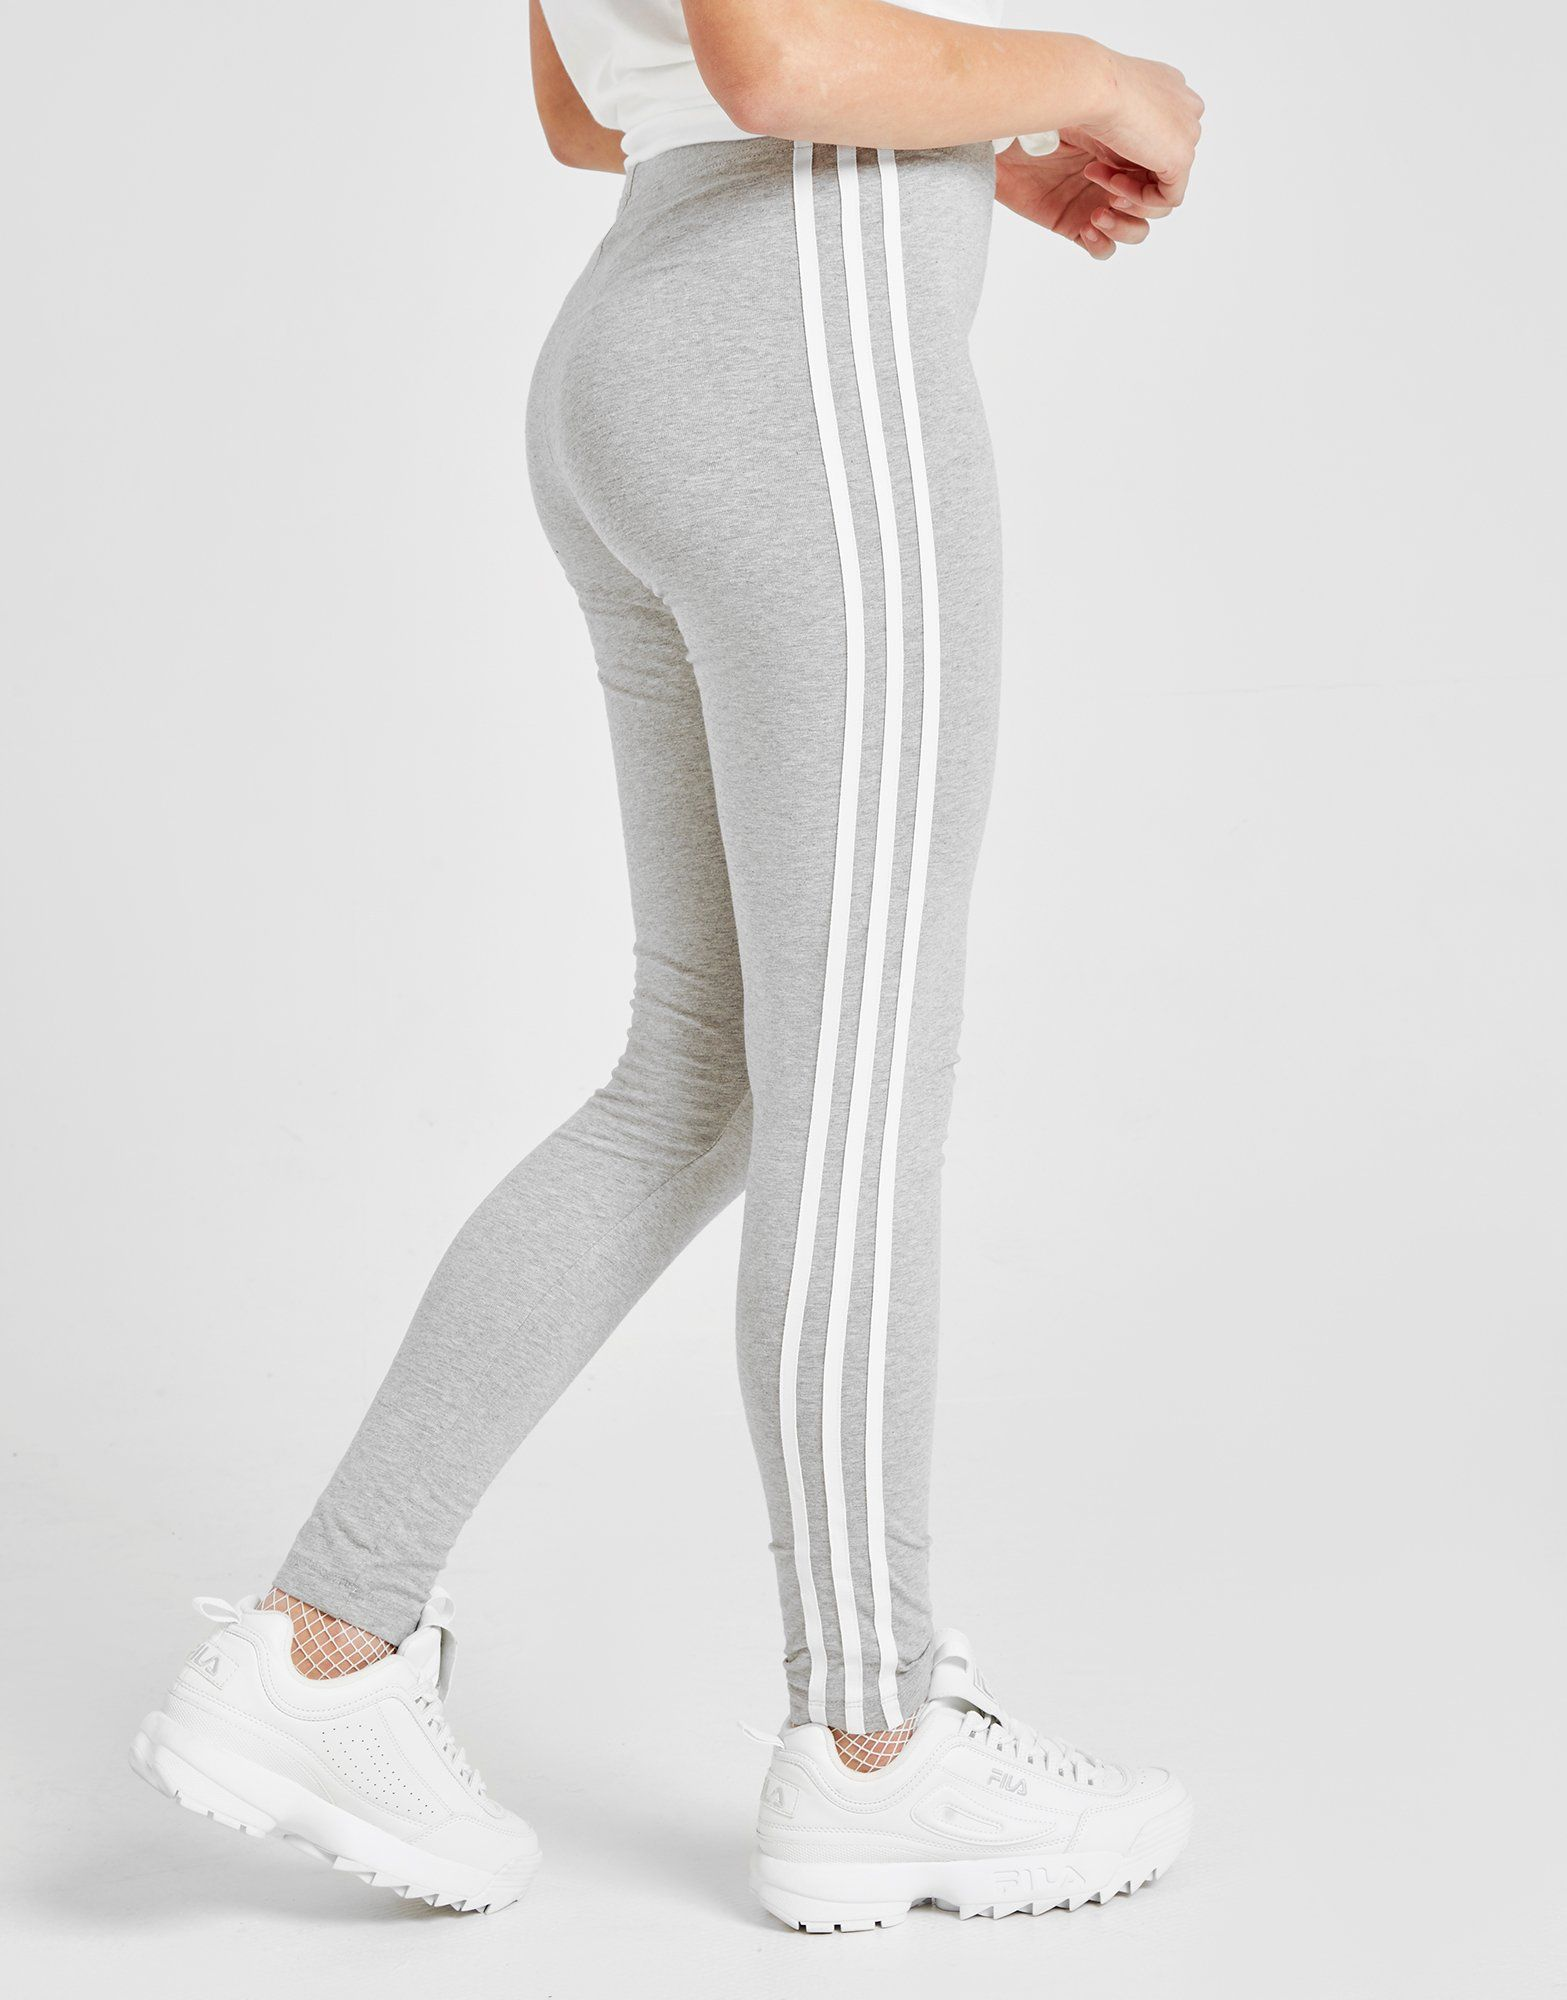 adidas Originals Girls' 3-Stripes Leggings Junior